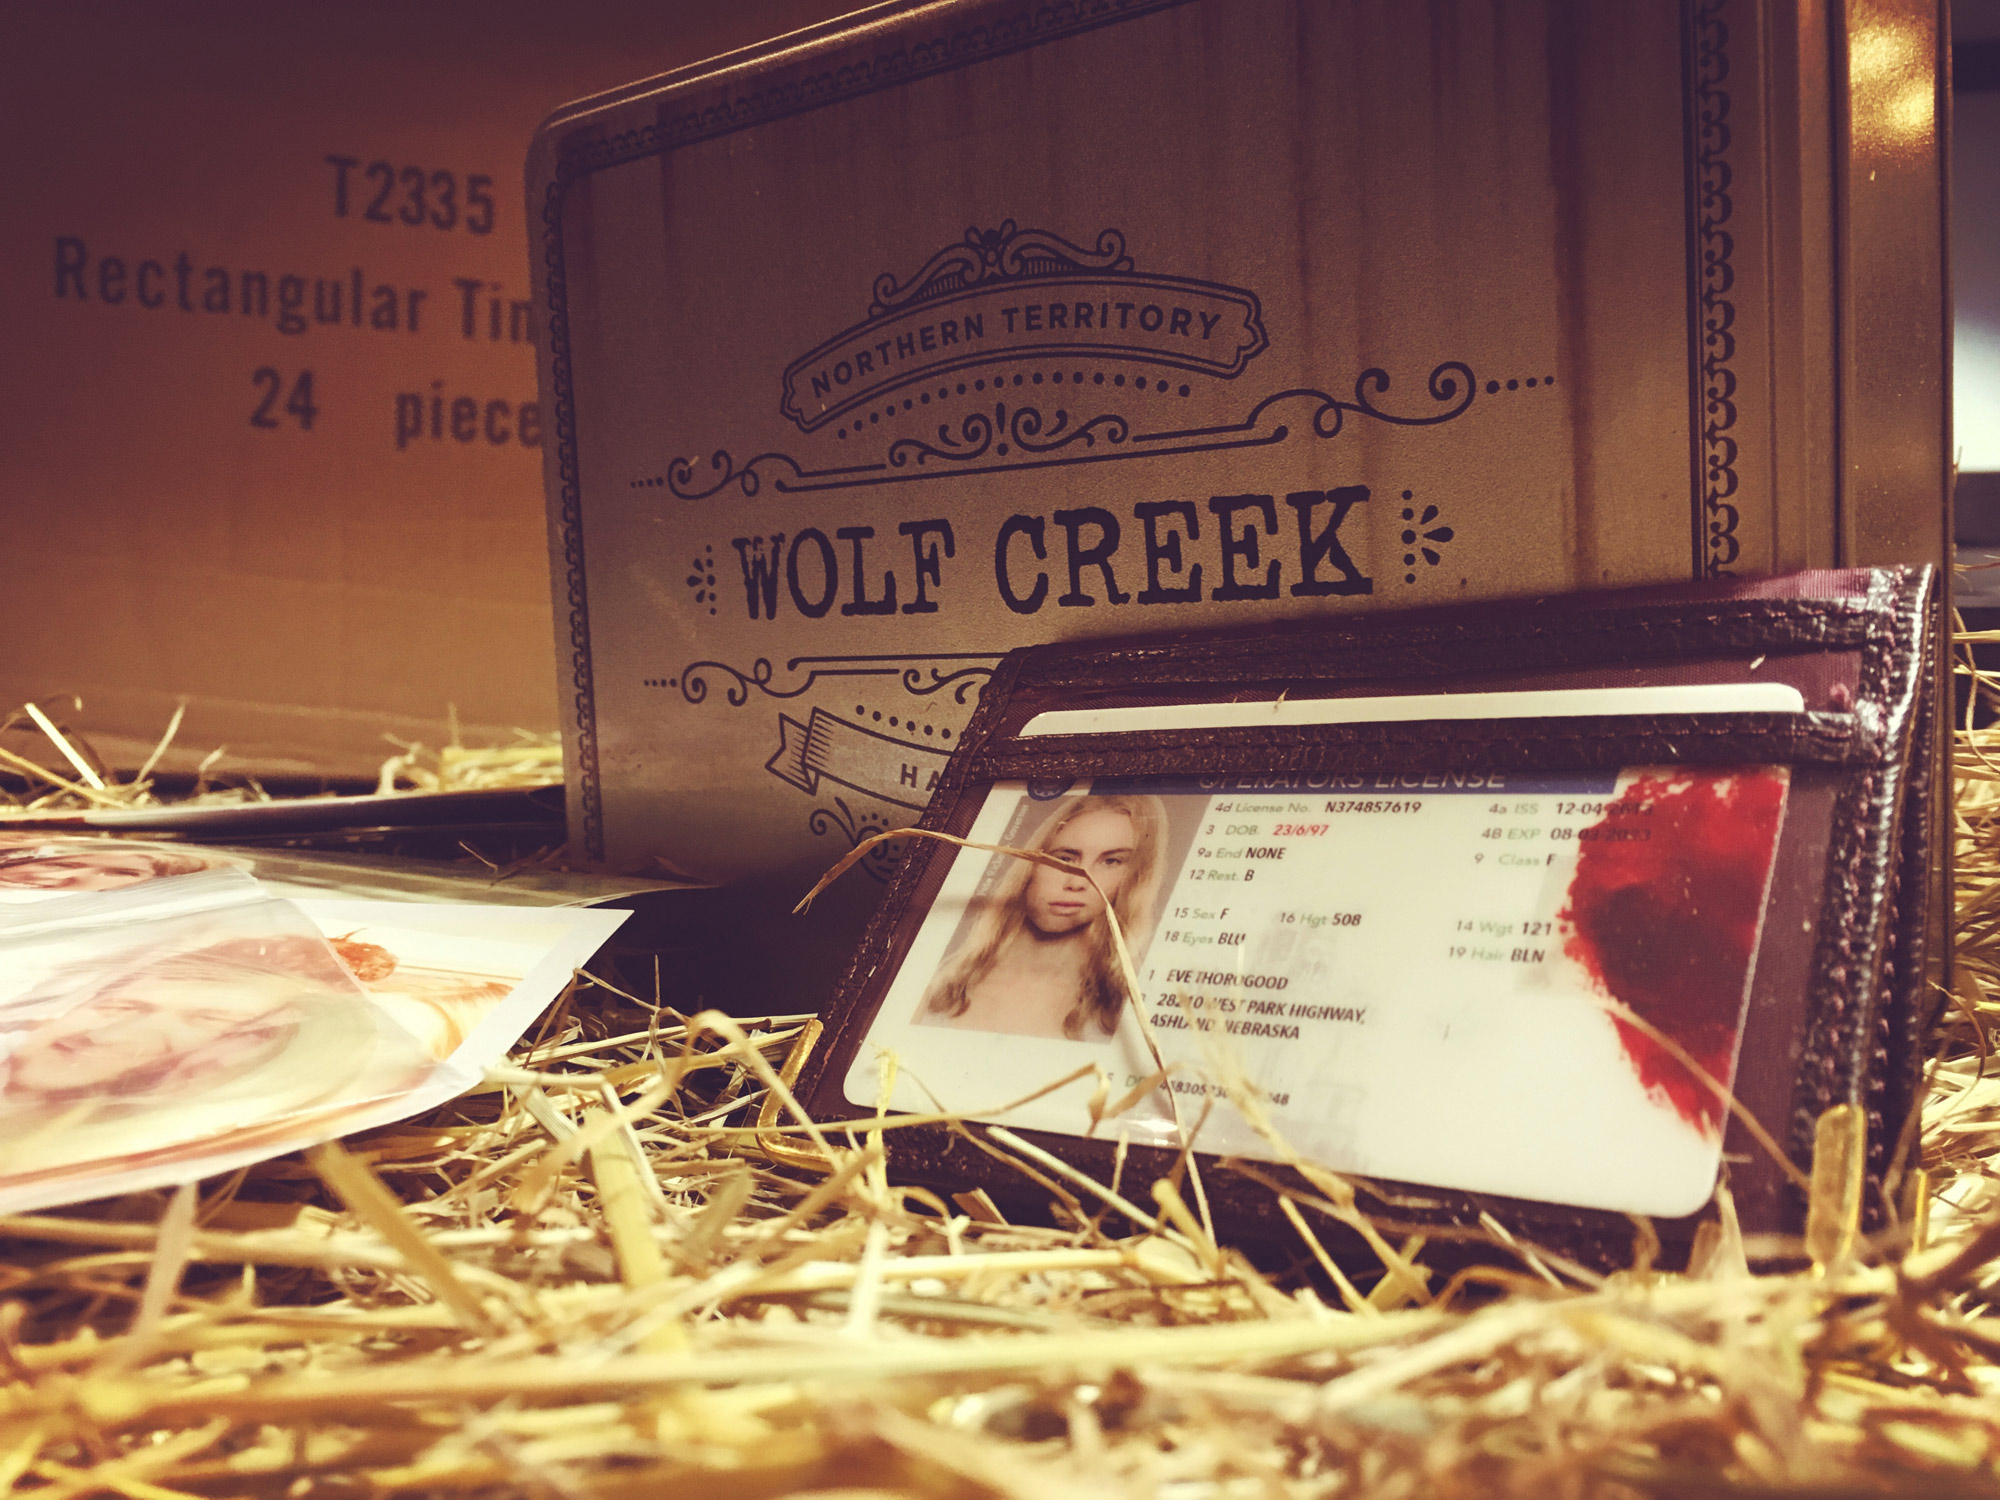 2am-misters-wolf-creek-license